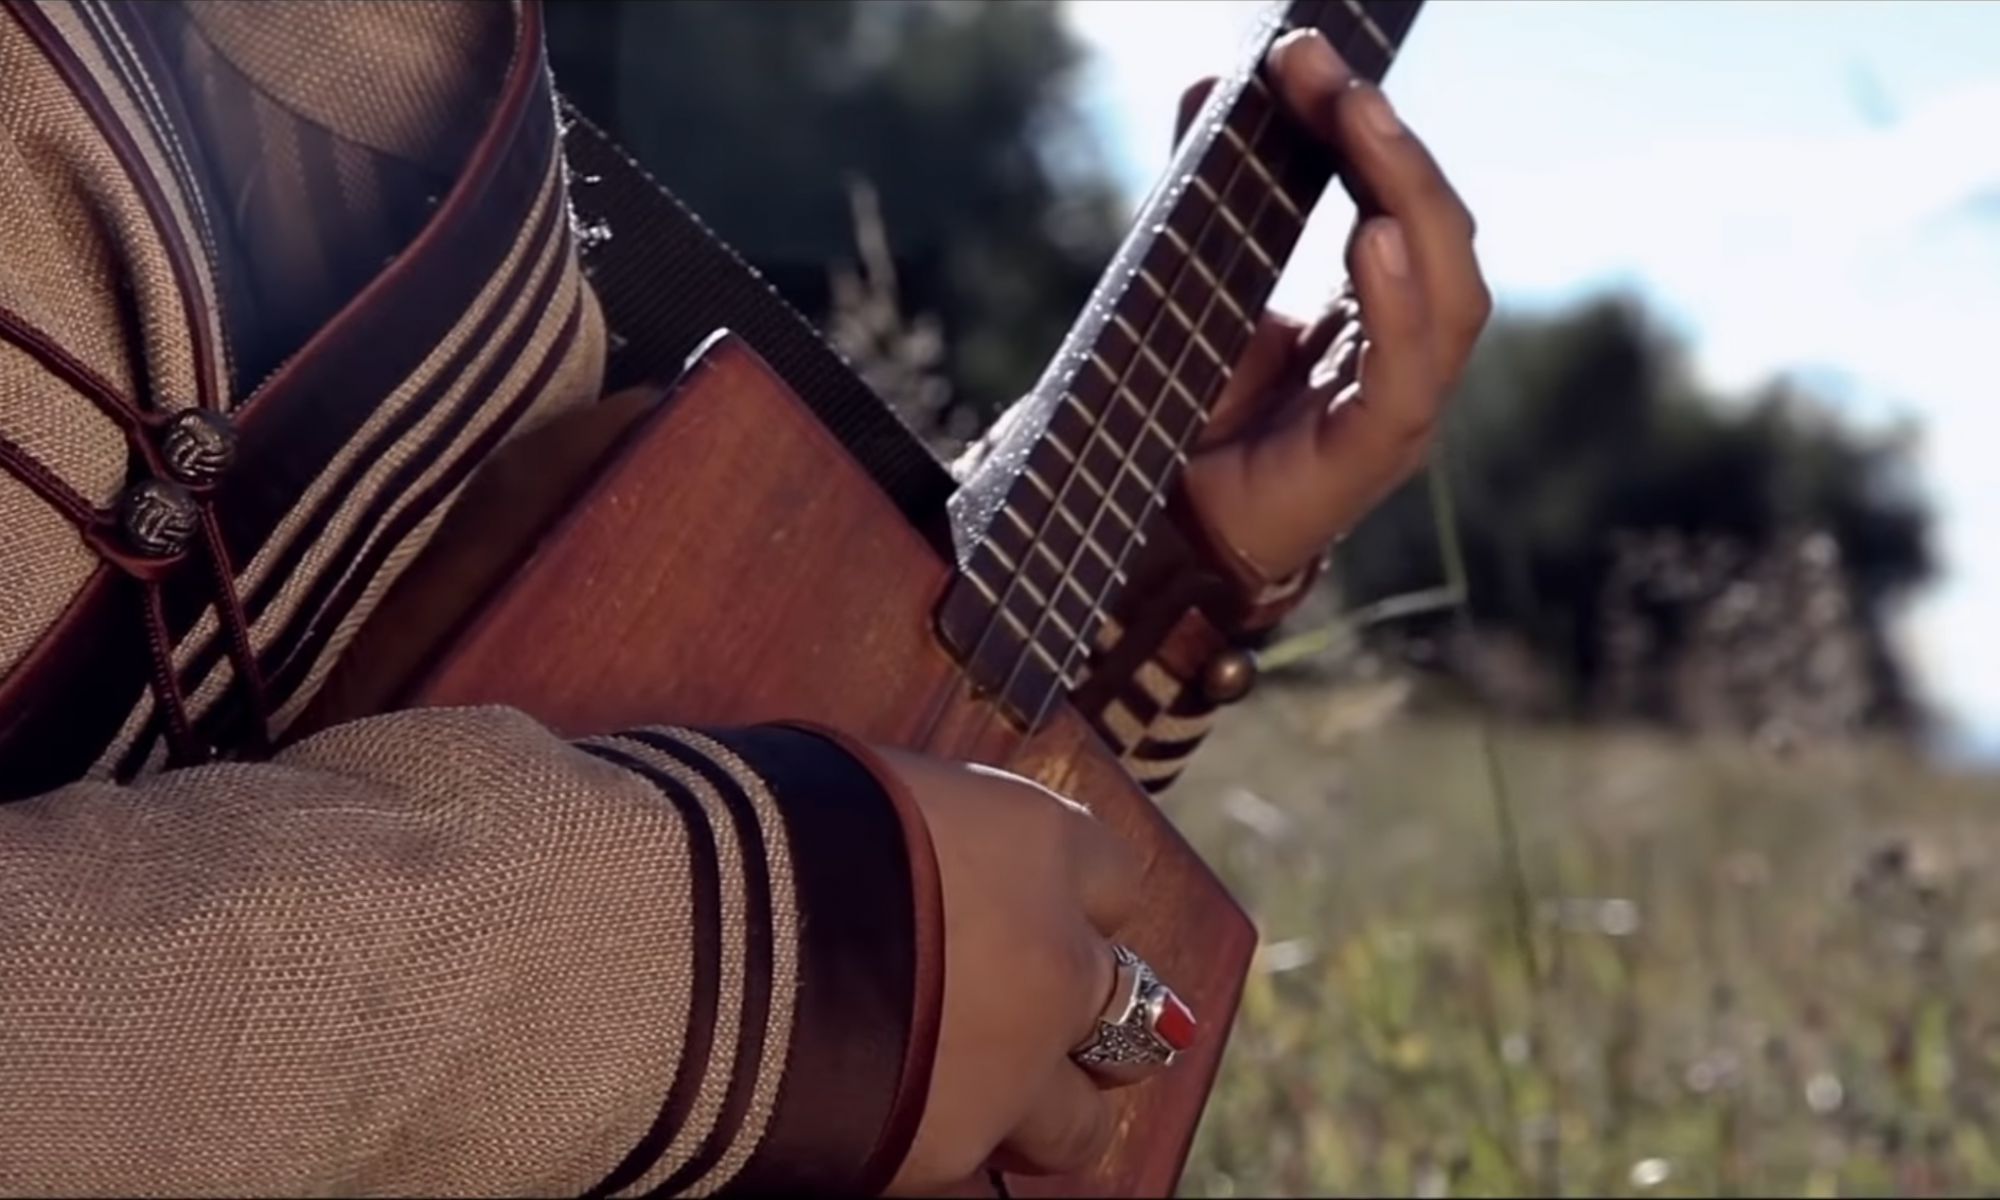 Closeup of someone playing a traditional 4 stringed guitar